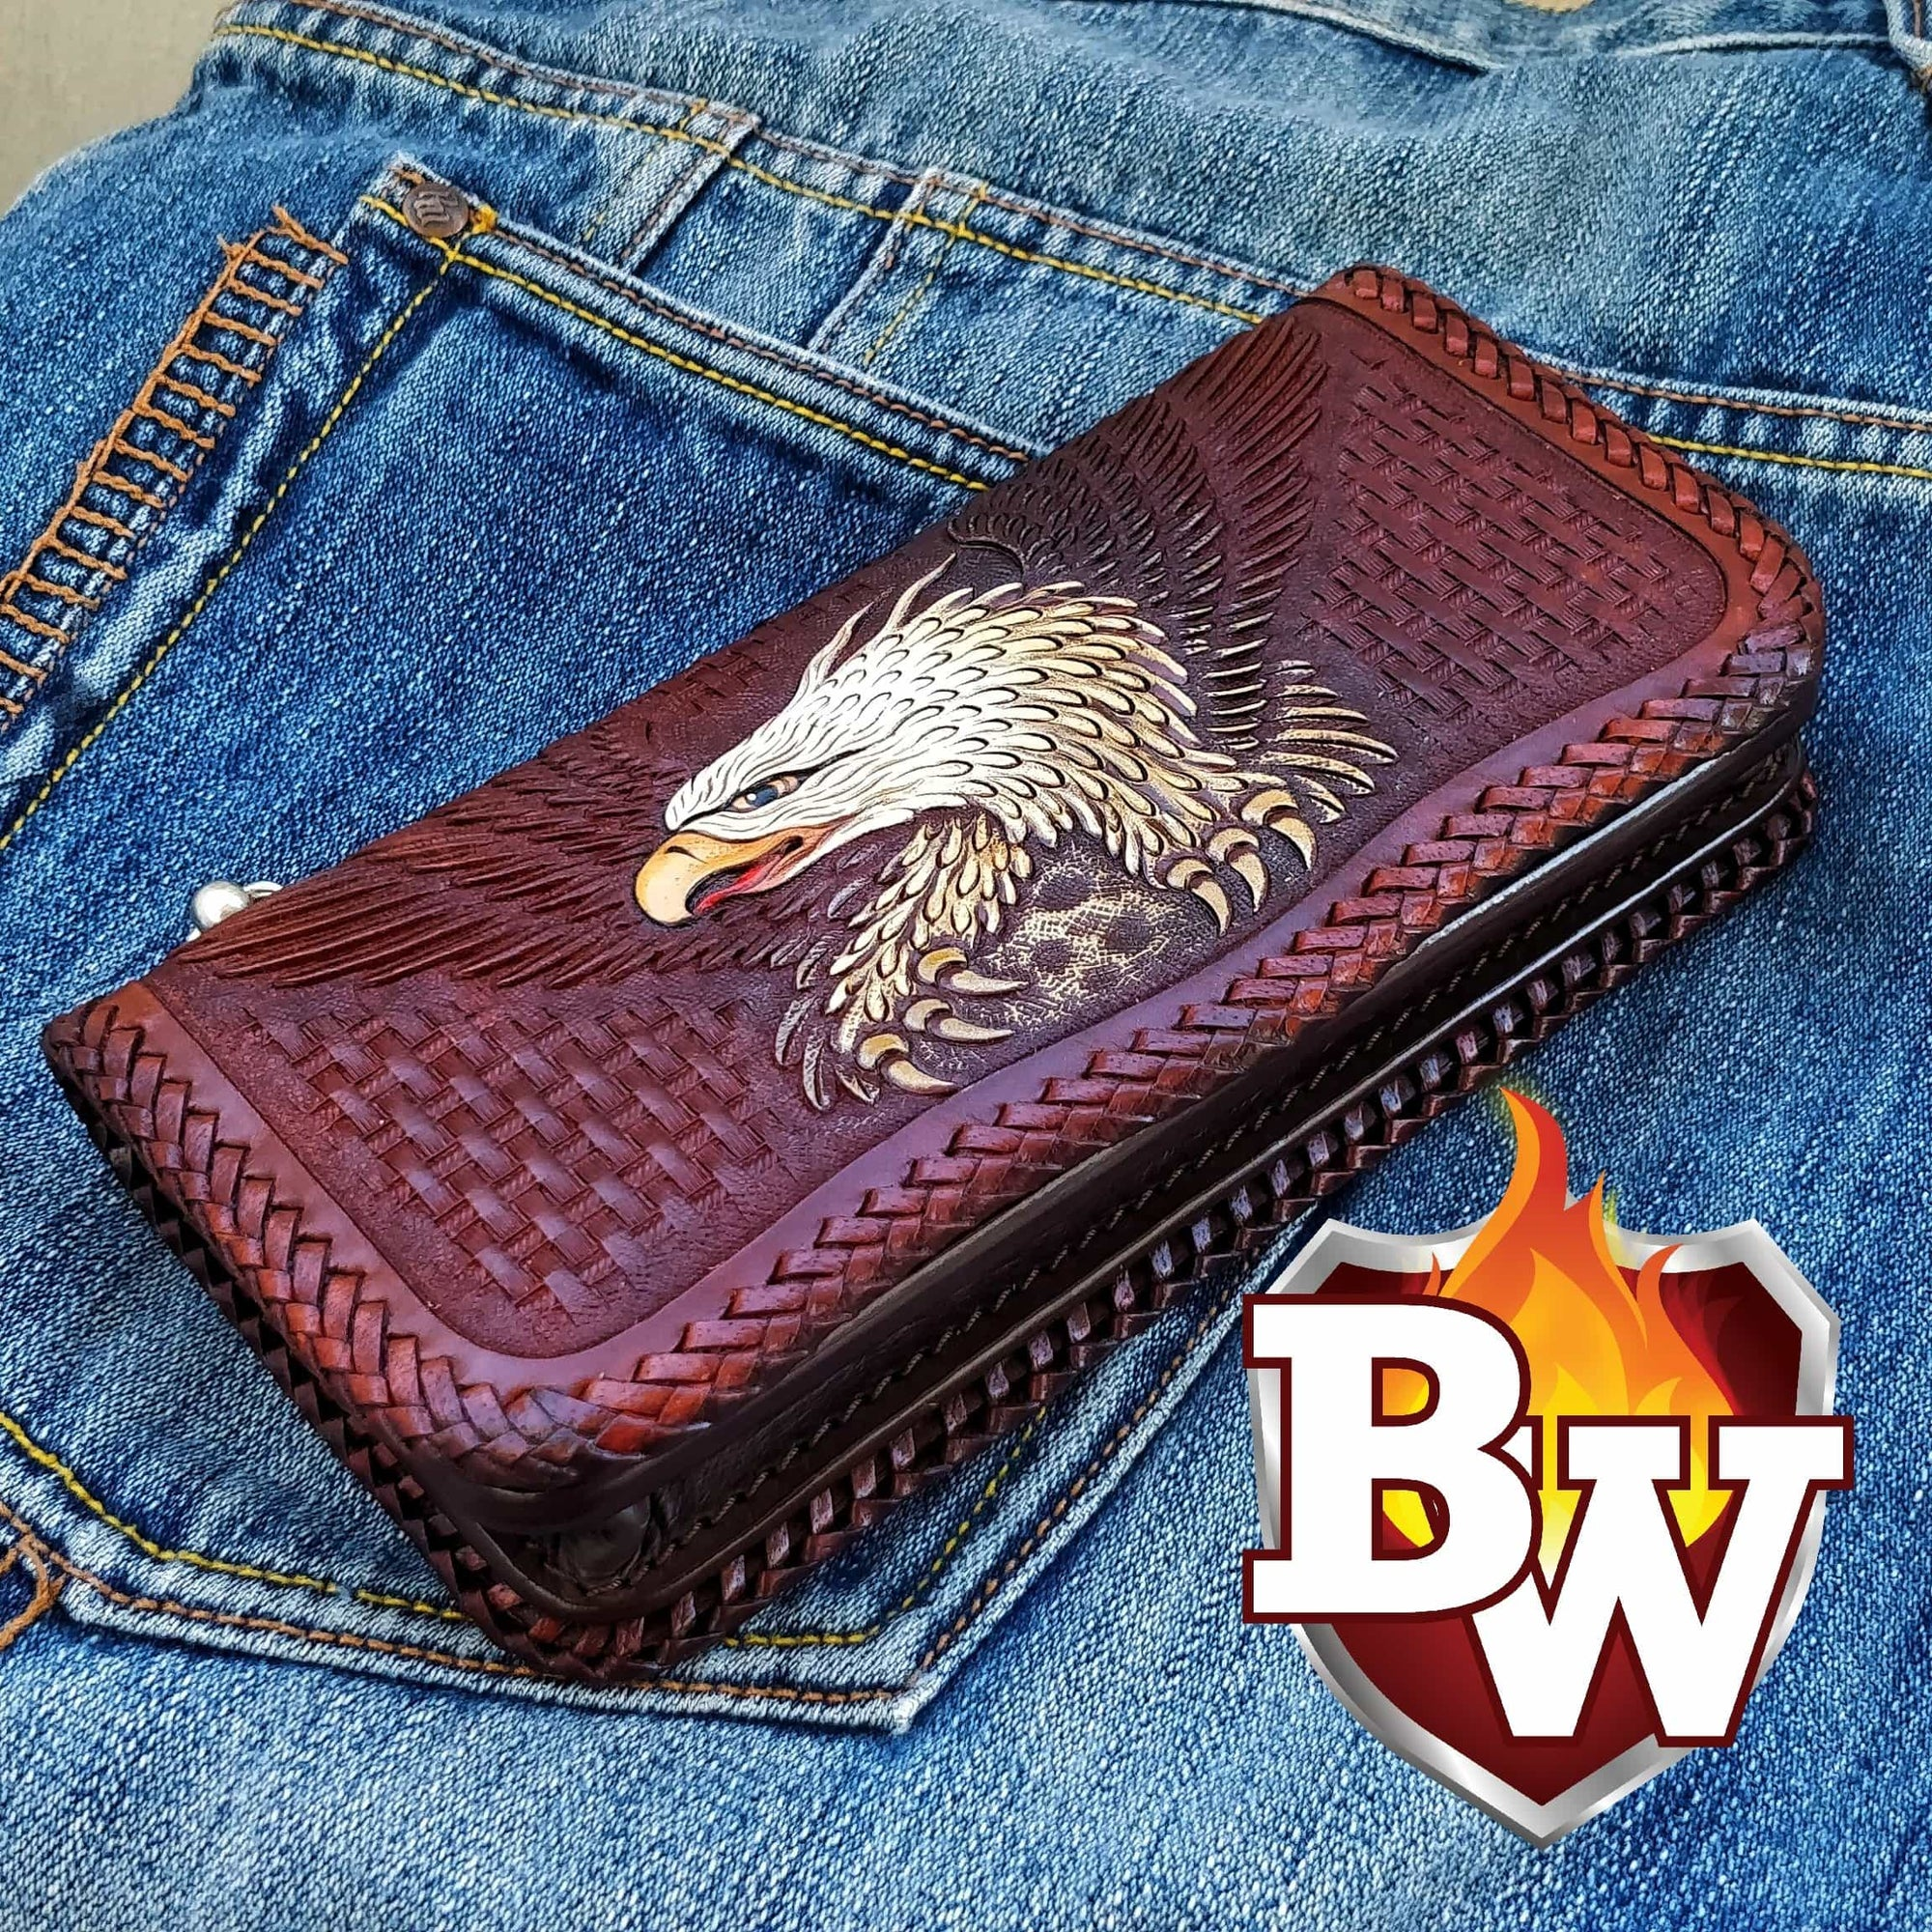 Bald Eagle 8 Custom Handmade Hand Tooled Leather Men's Biker Wallet. - Handcrafted Quality Genine Leather Backed by a 5-Year Warranty - Biker-Wallets.com